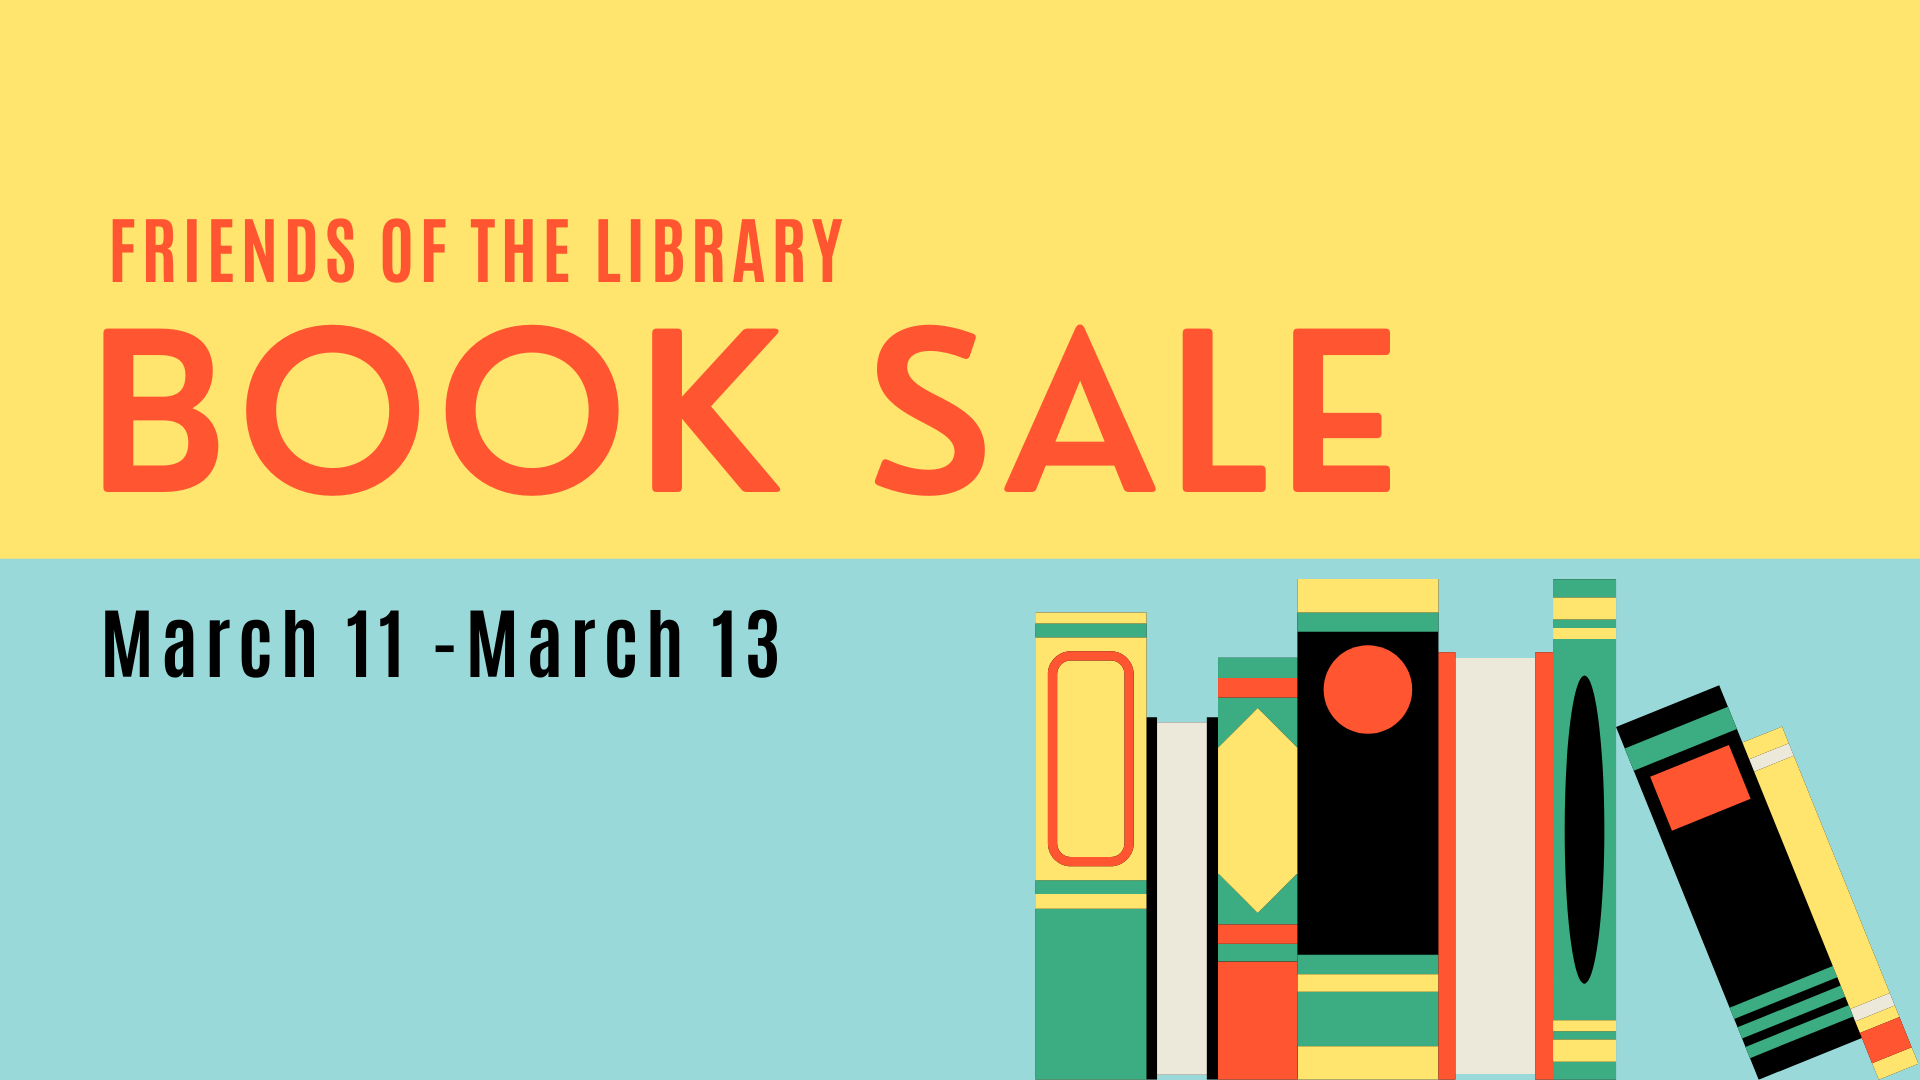 Friends of the Library Book Sale. March 11- March 13